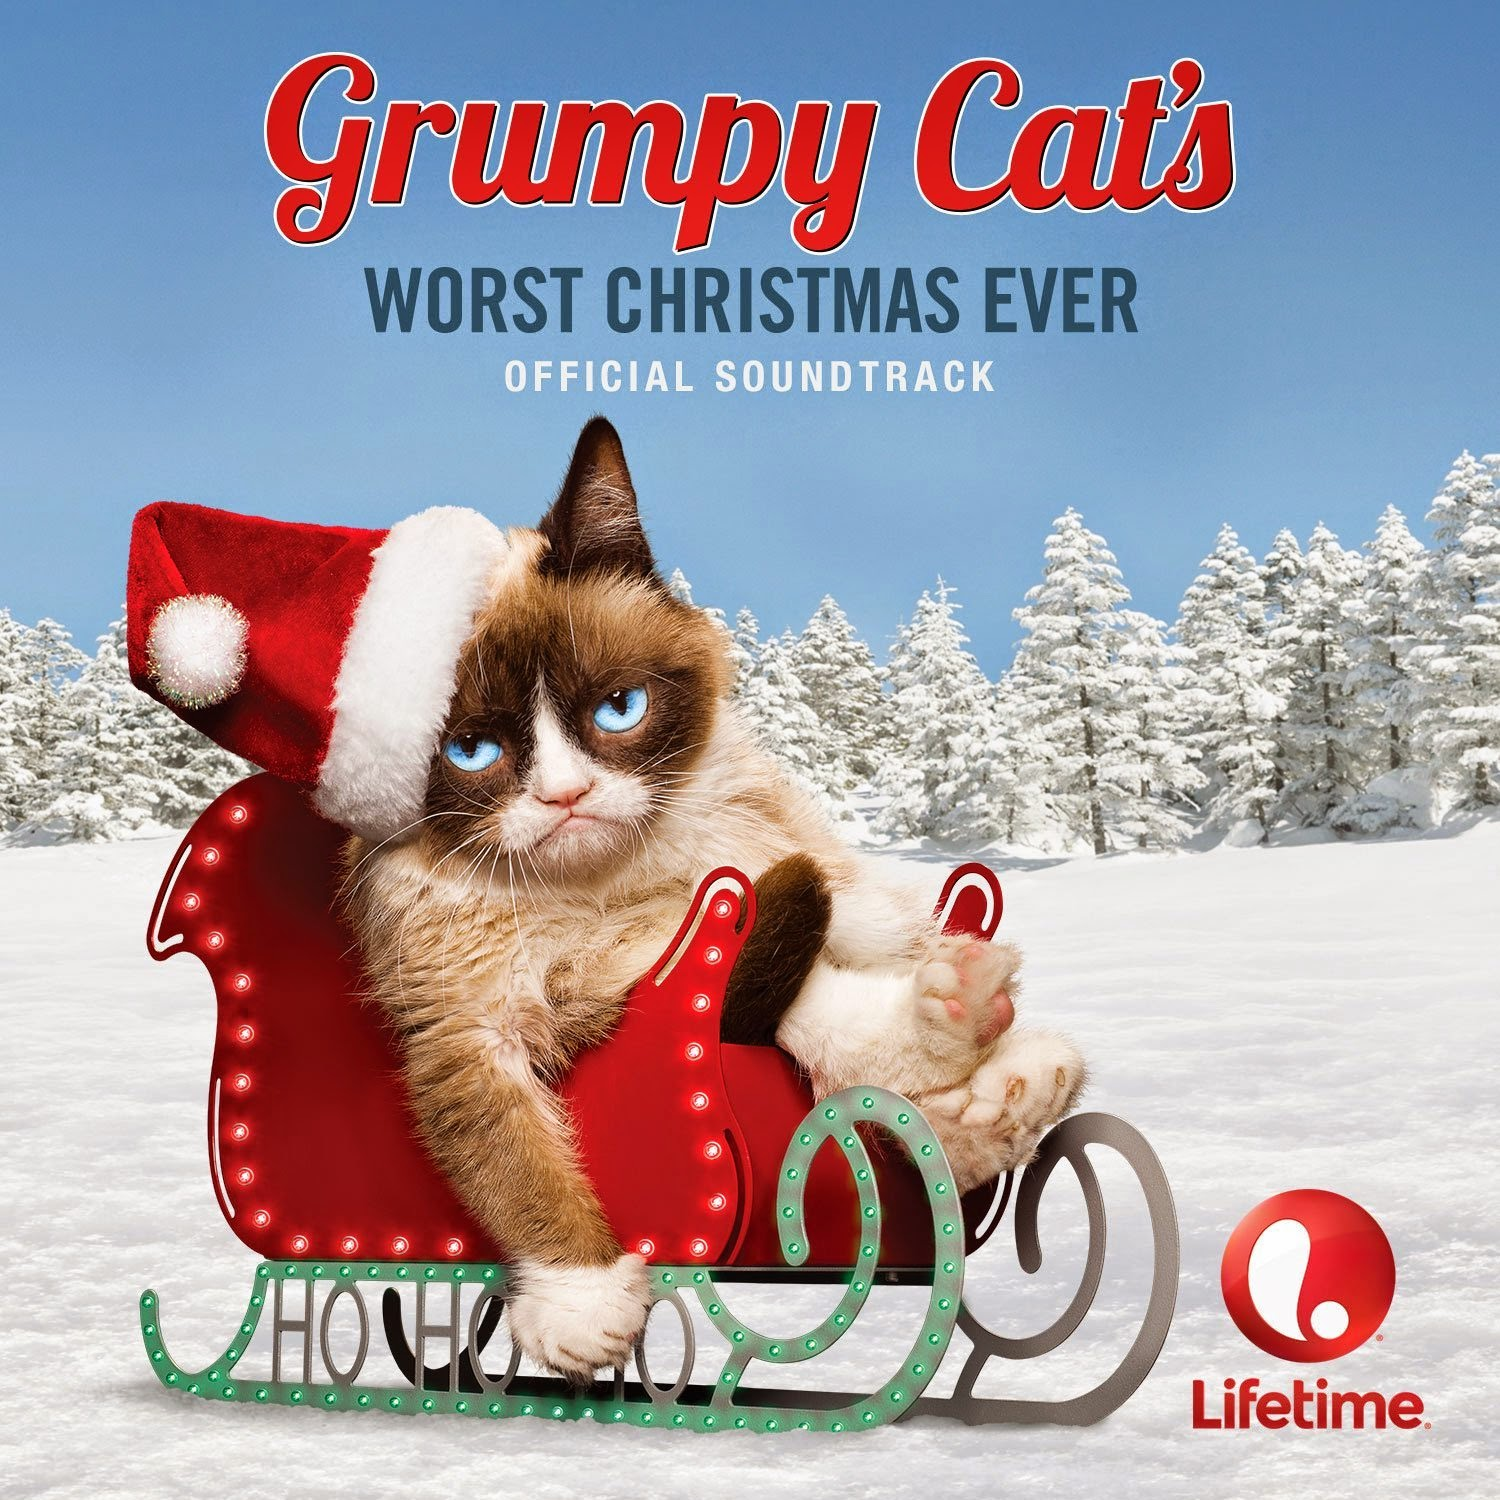 http://discover.halifaxpubliclibraries.ca/?q=title:grumpy%20cat%27s%20worst%20christmas%20ever